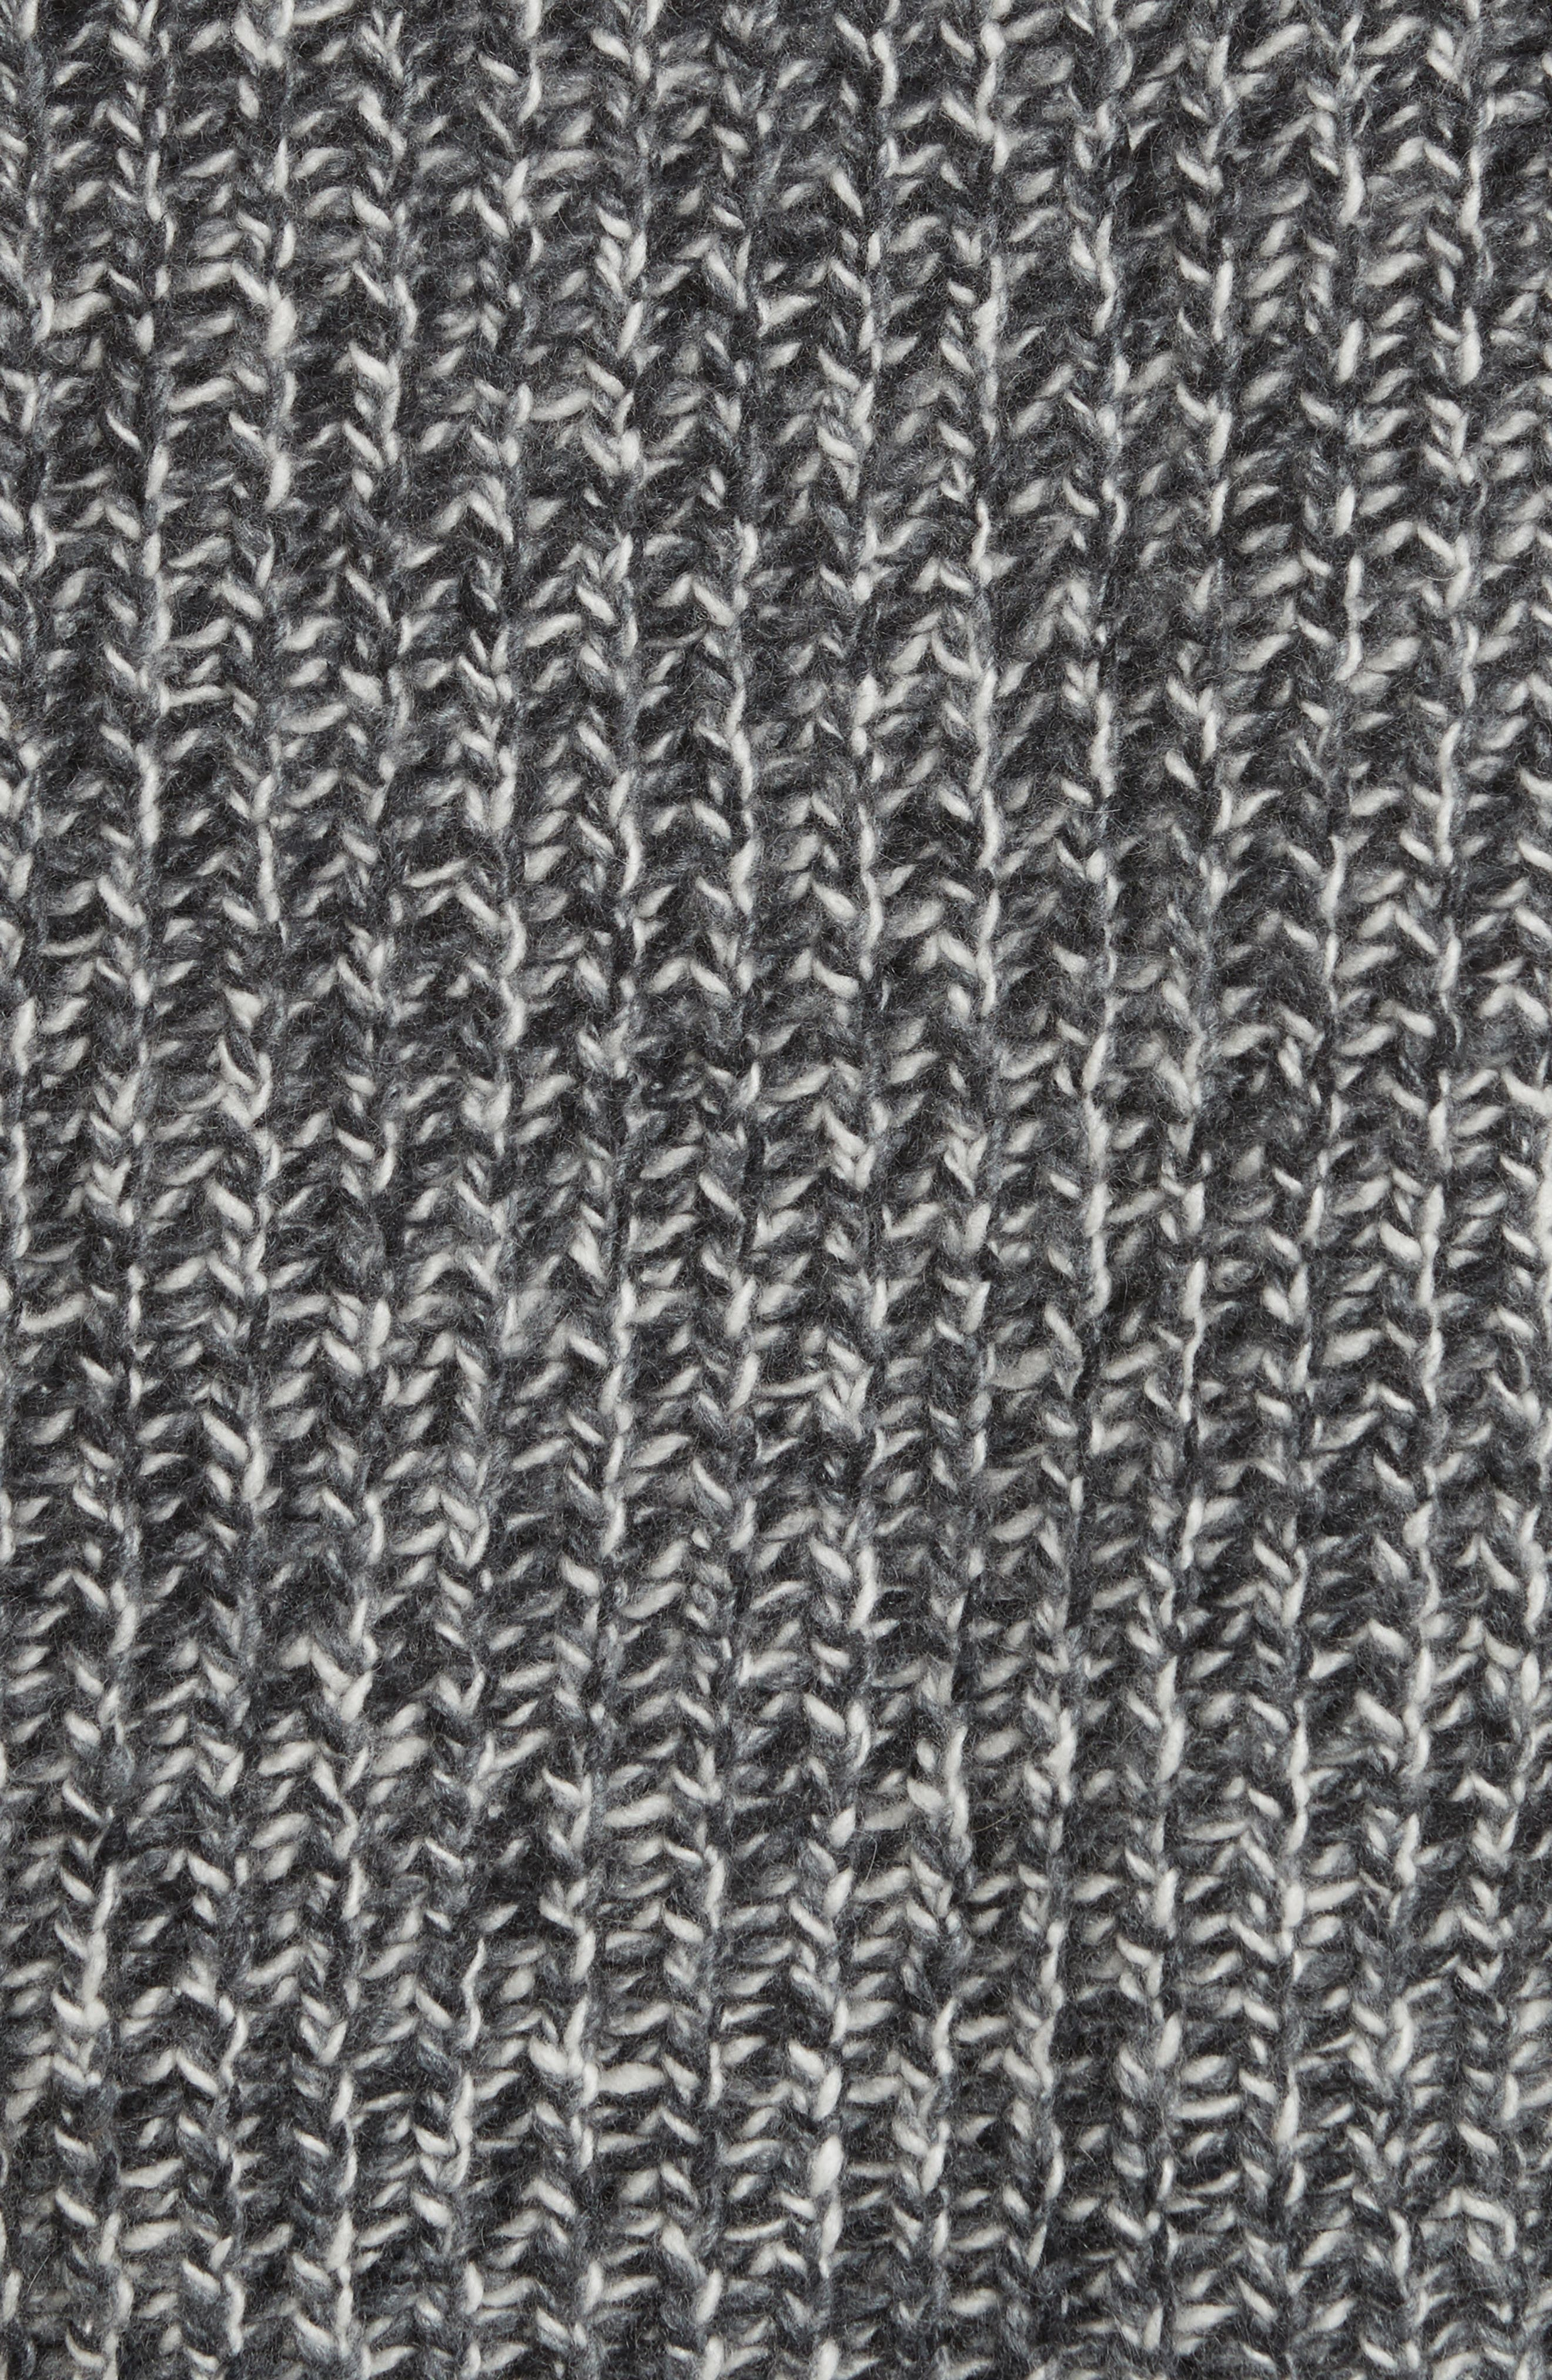 Marled Wool Blend Sweater,                             Alternate thumbnail 5, color,                             020